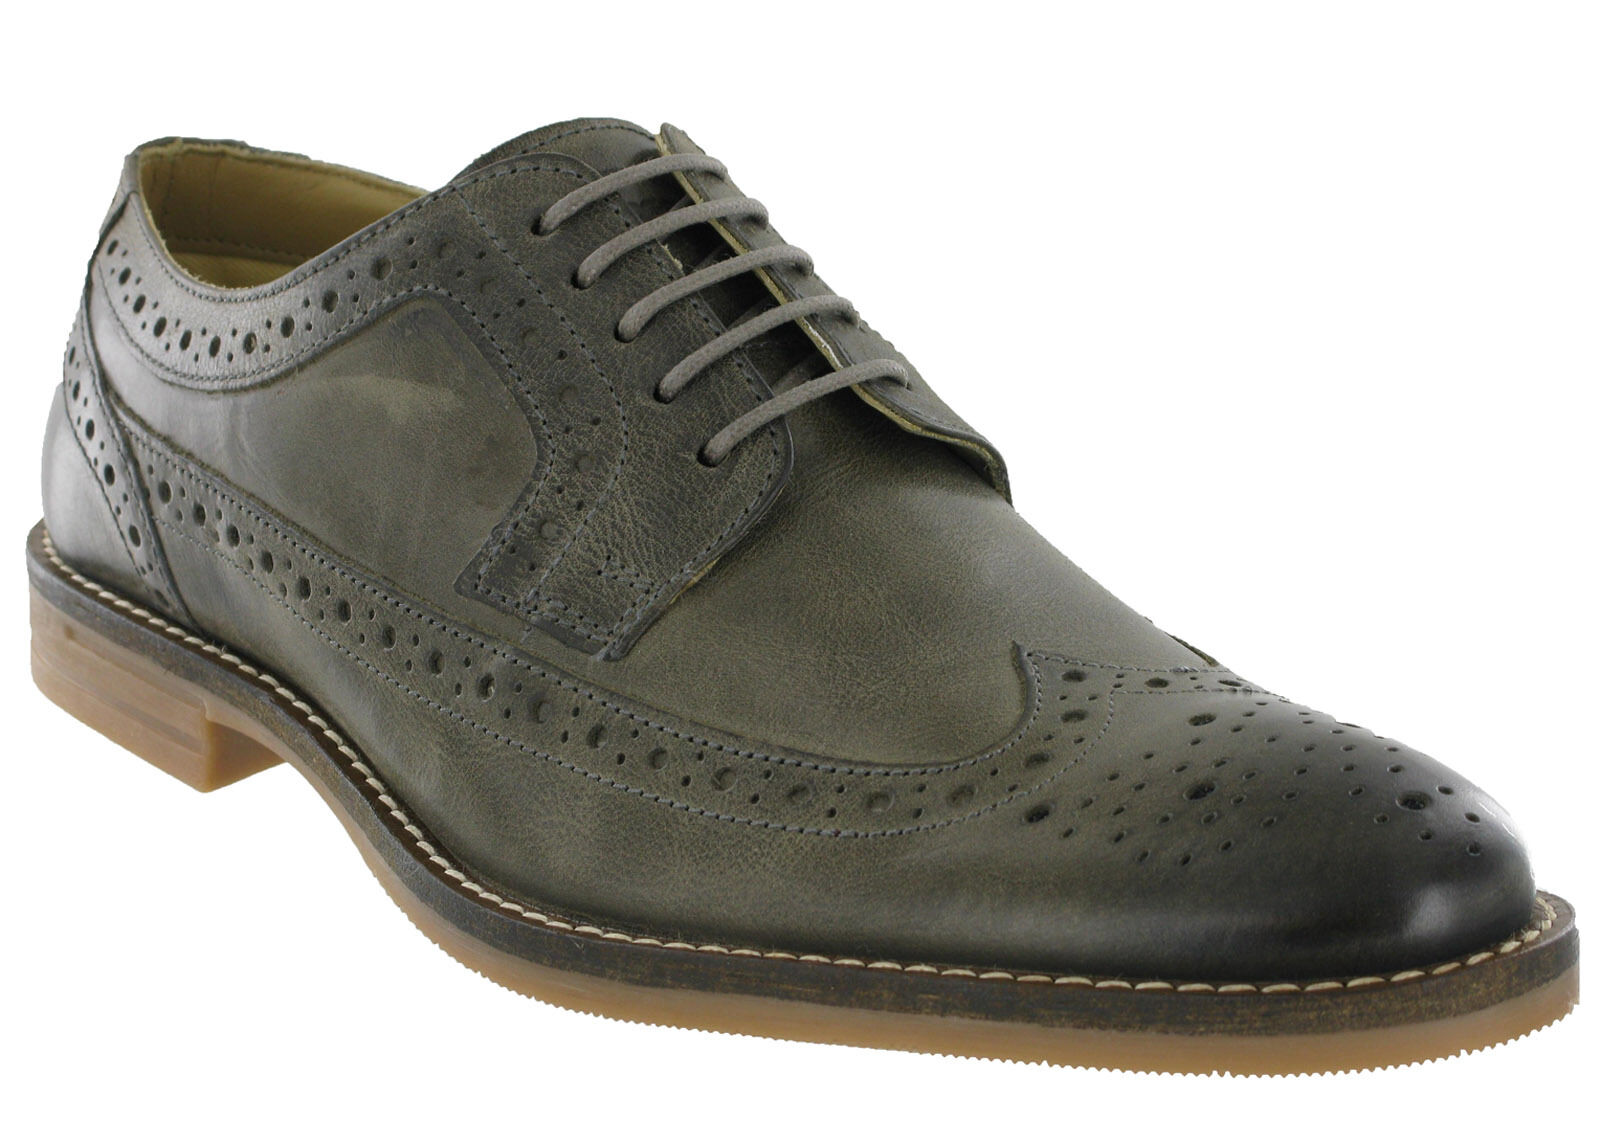 Base London Milton Brogues Leather Formal 5 Eye Lined Lace Up Mens Shoes UK6-12